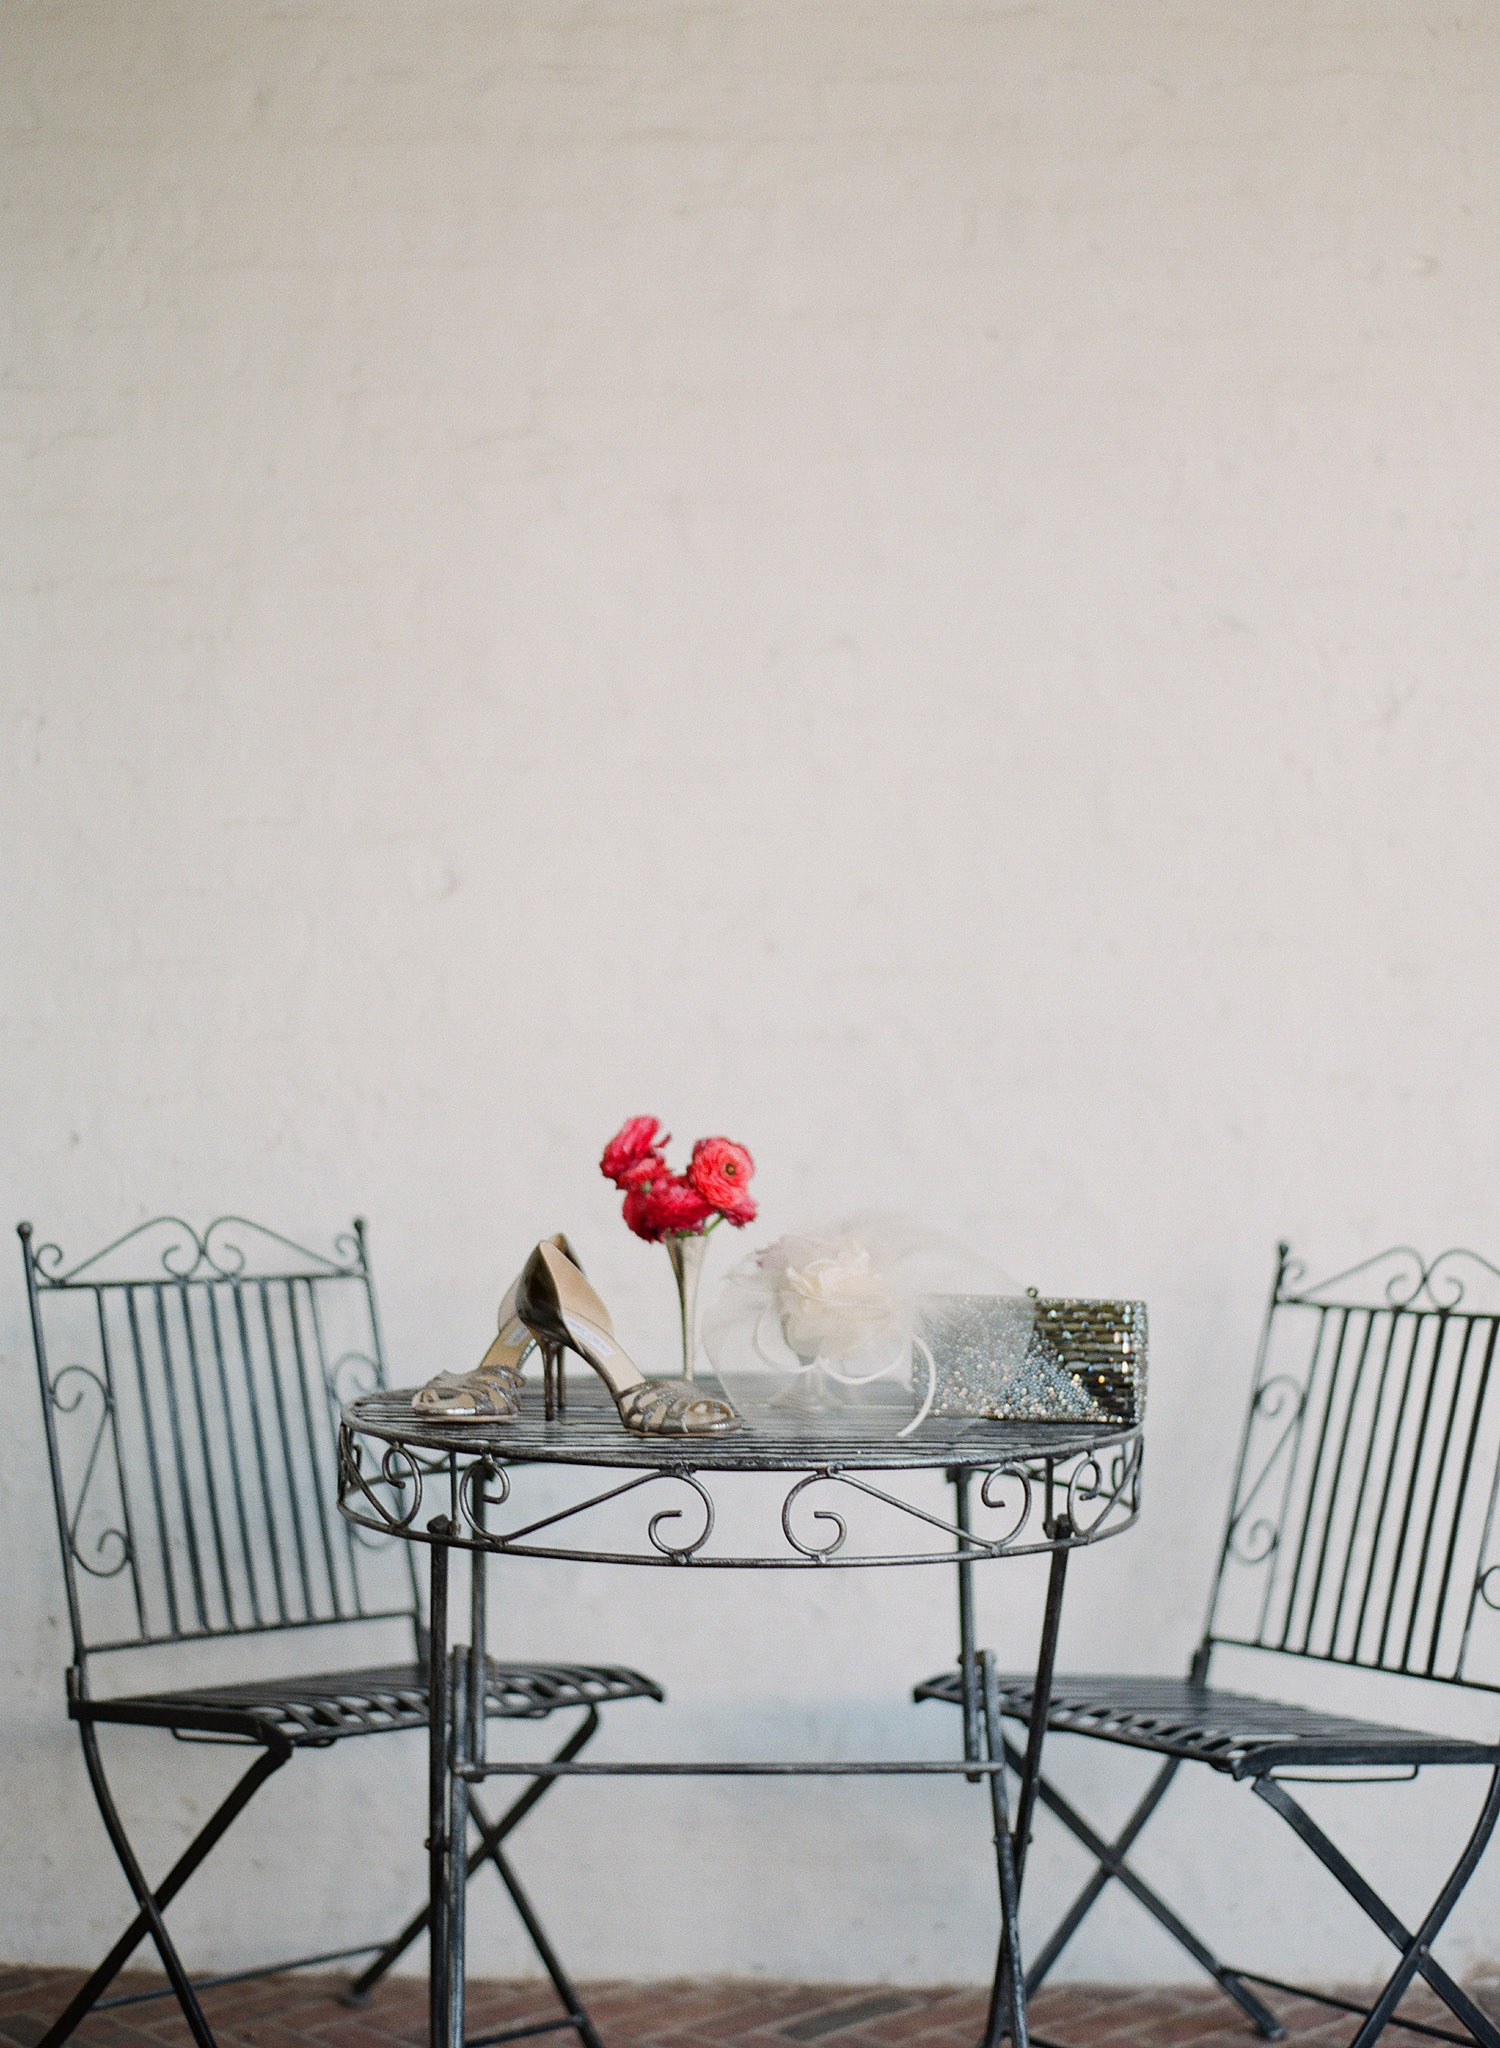 the bride's shoes, veil, and purse sit on a wrought iron table at the Italian Villa The Villa Terrace wedding - a favorite wedding venue of international destination wedding photographer, lexia frank, who is a film photographer for luxury destinations worldwide.